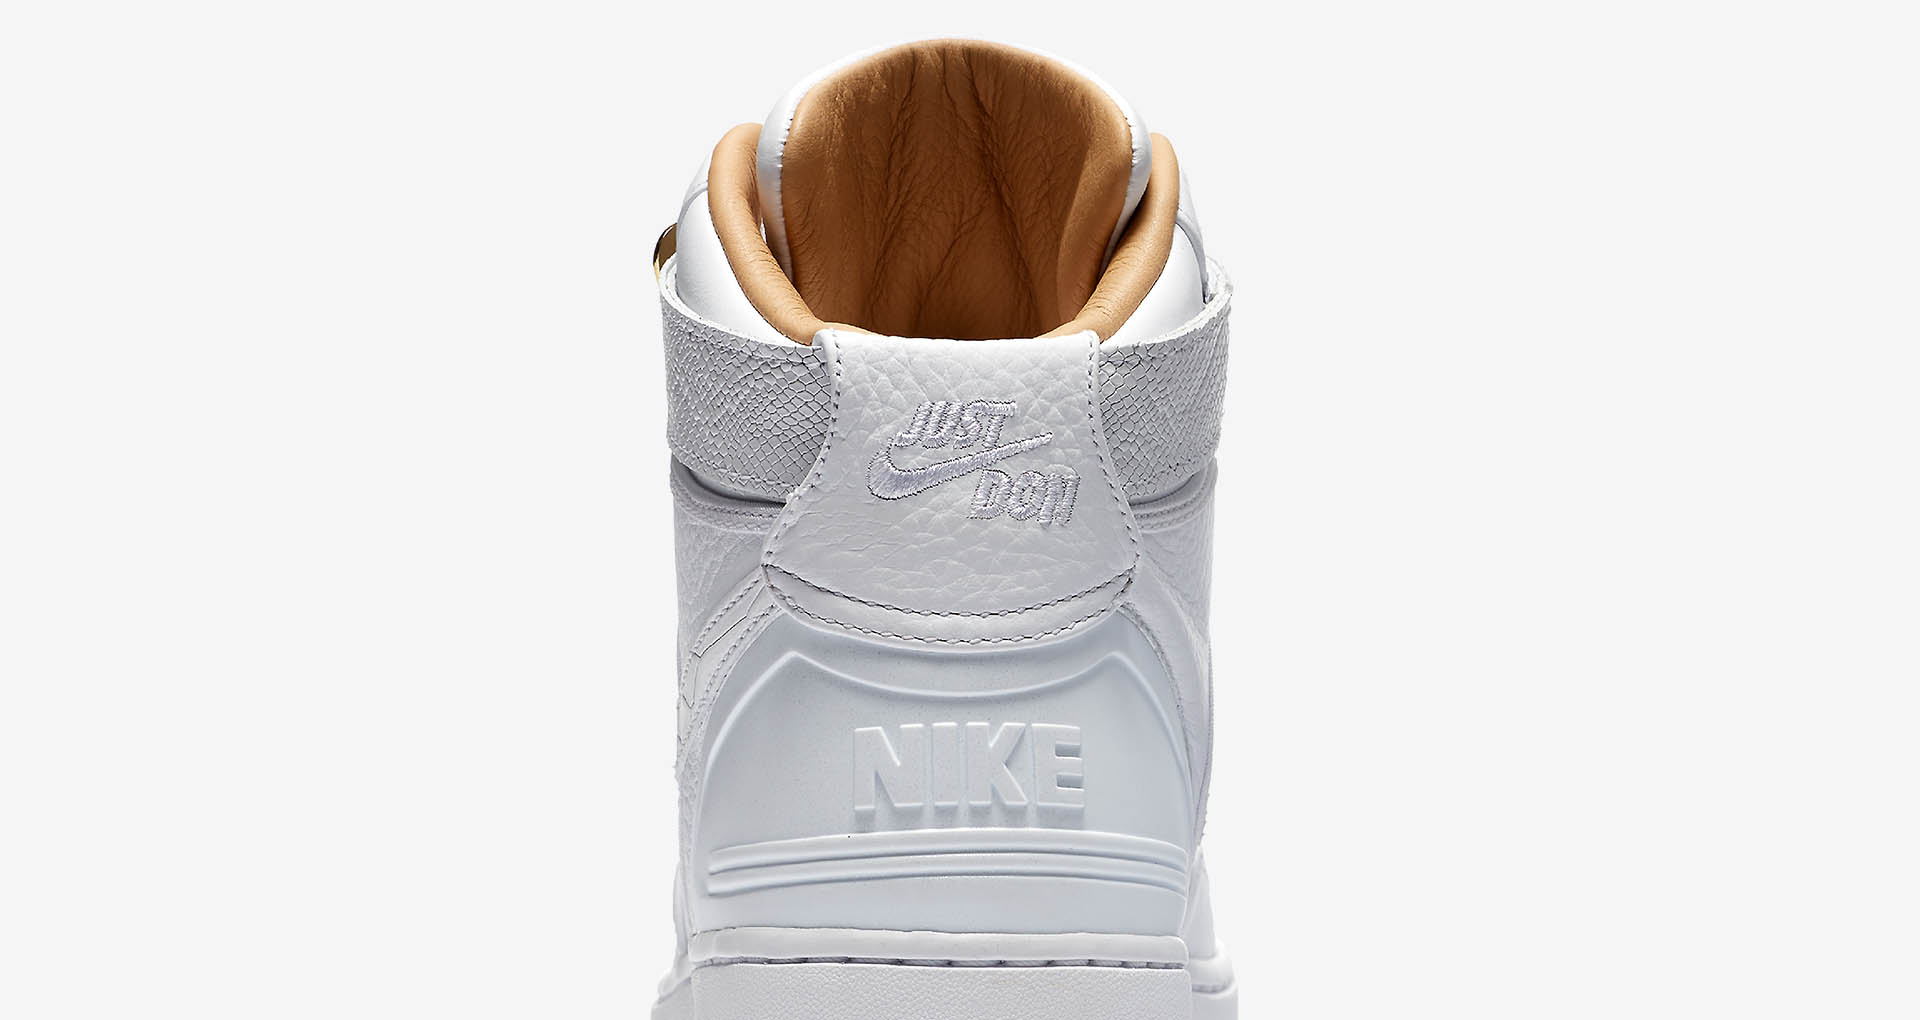 celebrate-the-35th-anniversary-of-the-nike-air-force-1-release-just-don